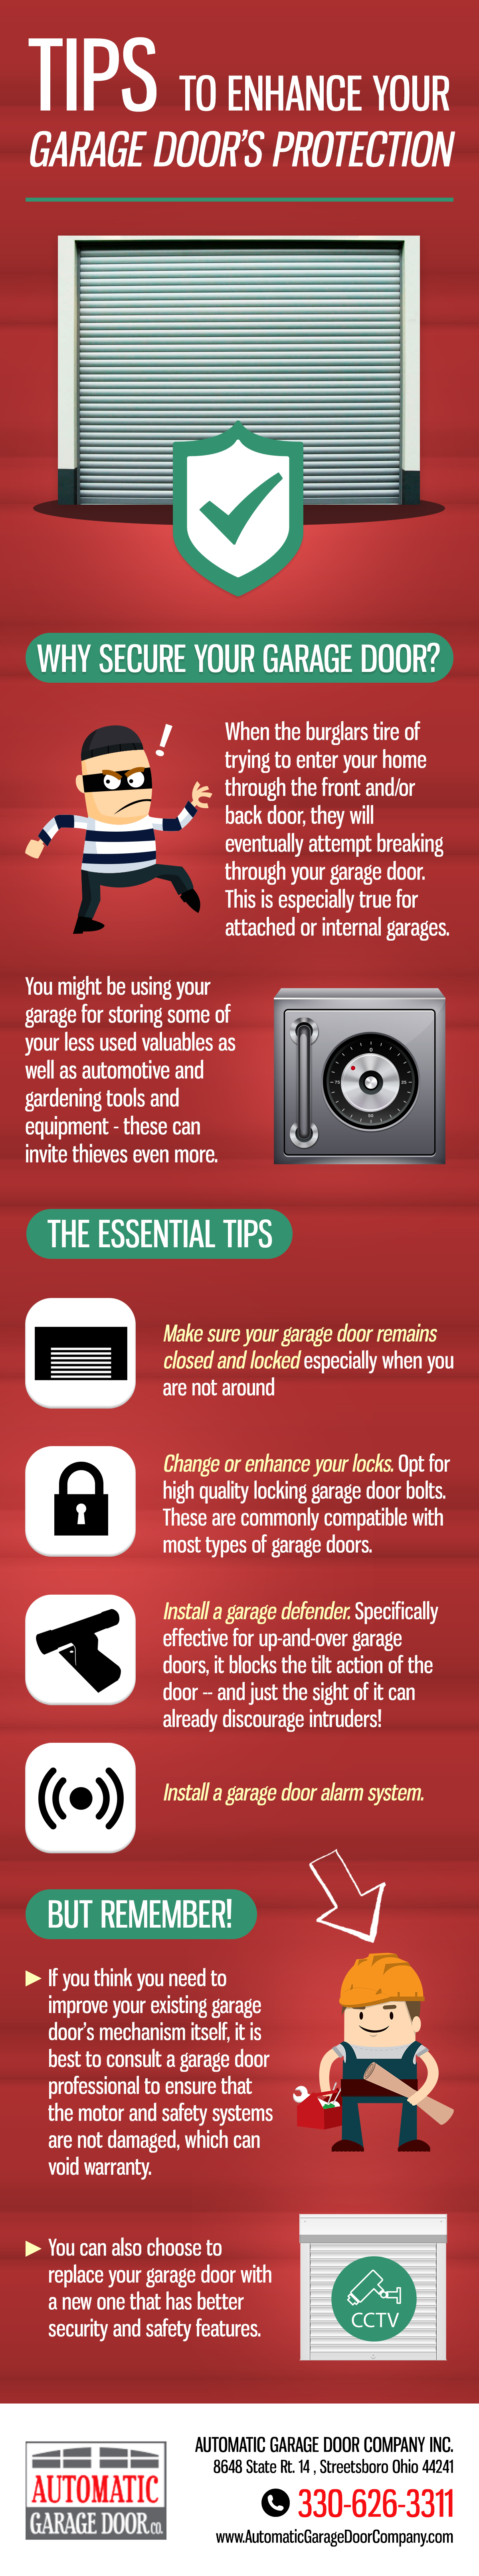 Tips to Enhance Your Garage Door's Security and Protection